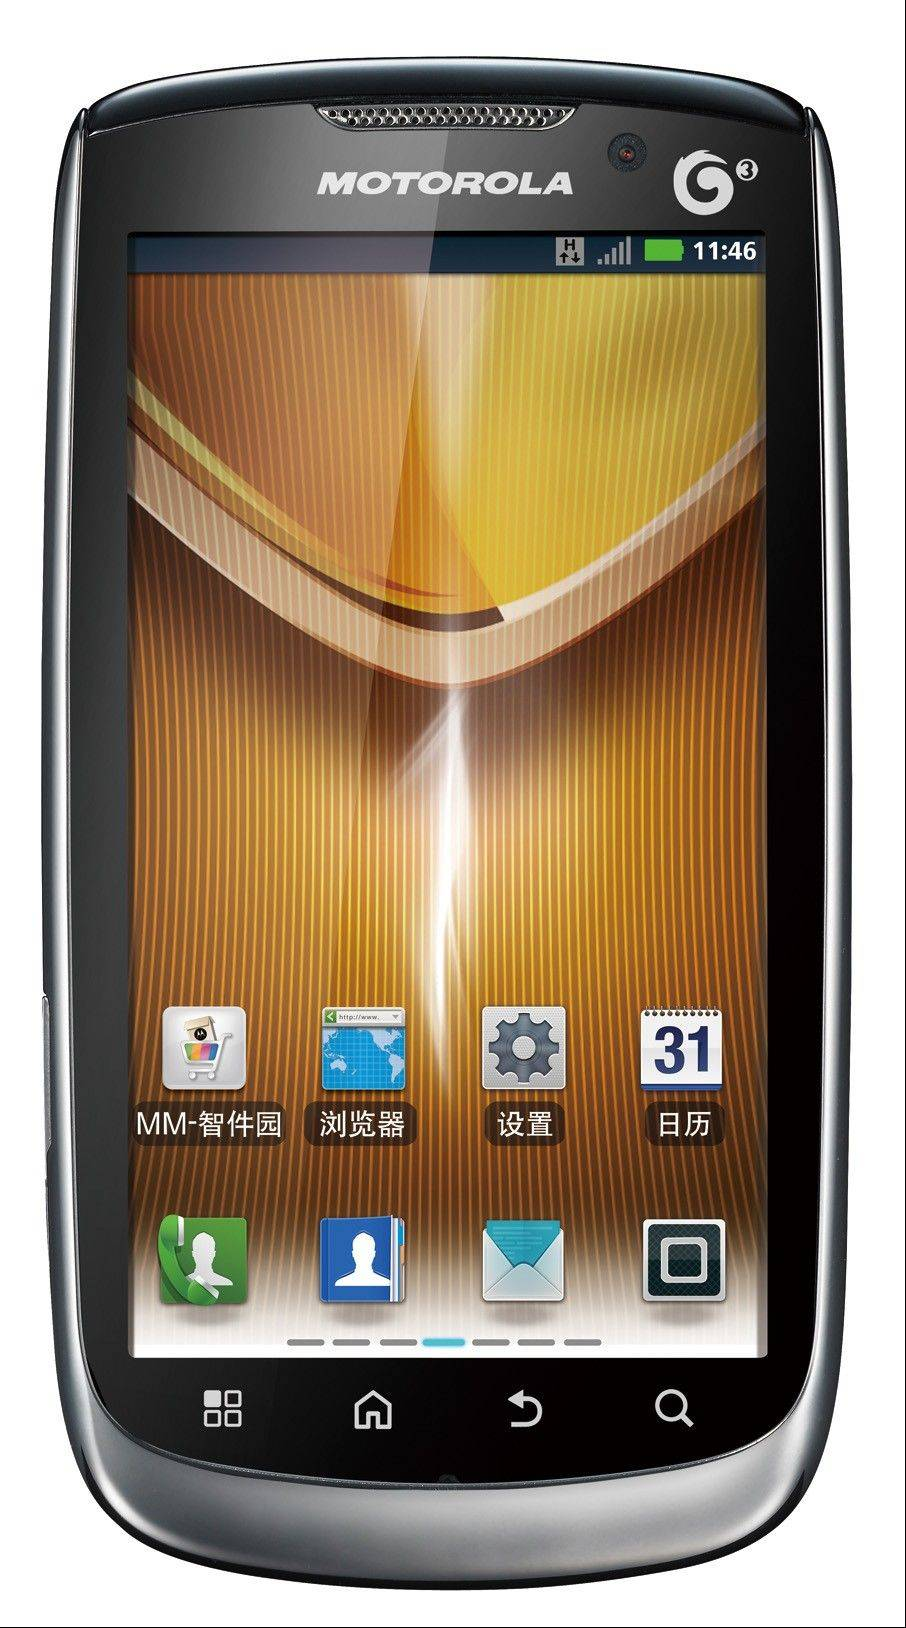 The Motorola Mobility smartphone called Moto MT870